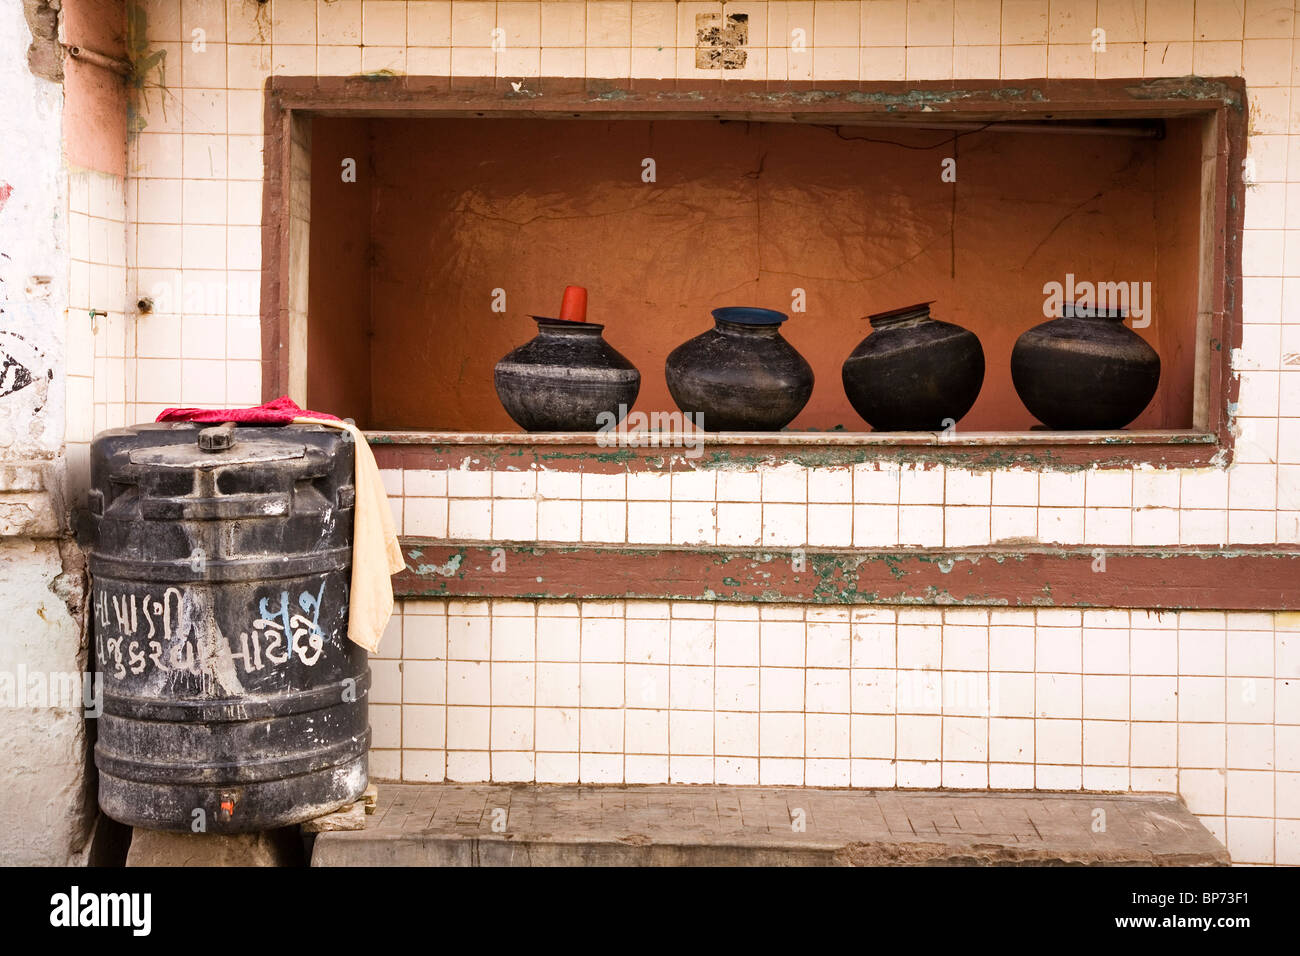 Pots stand ready to be filled with water by a streetside in Ahmedabad, Gujarat, India. - Stock Image